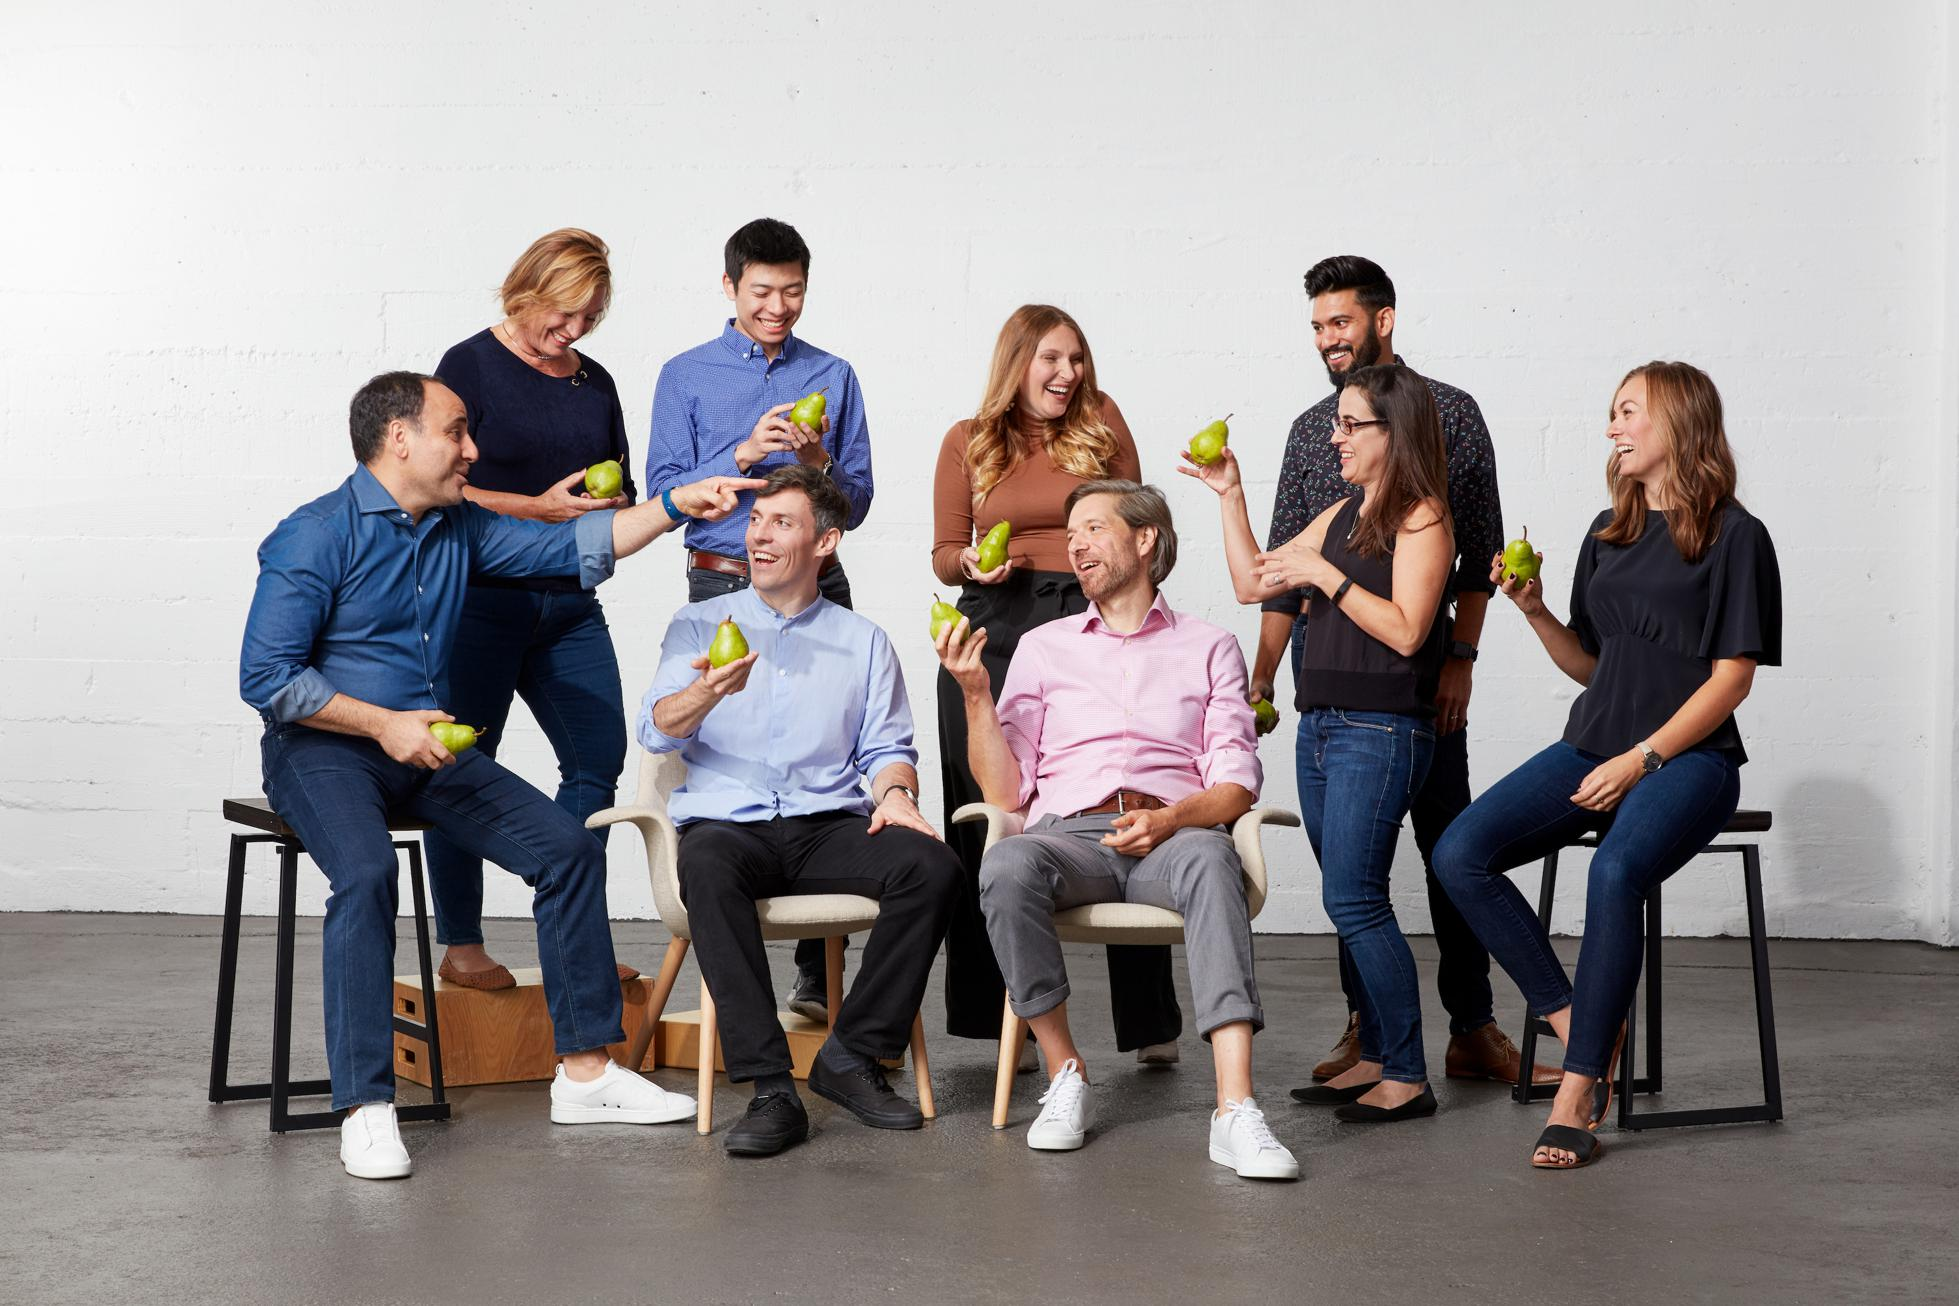 The Pear VC team as of October 2019, with cofounders Pejman Nozad and Mar Hershenson.